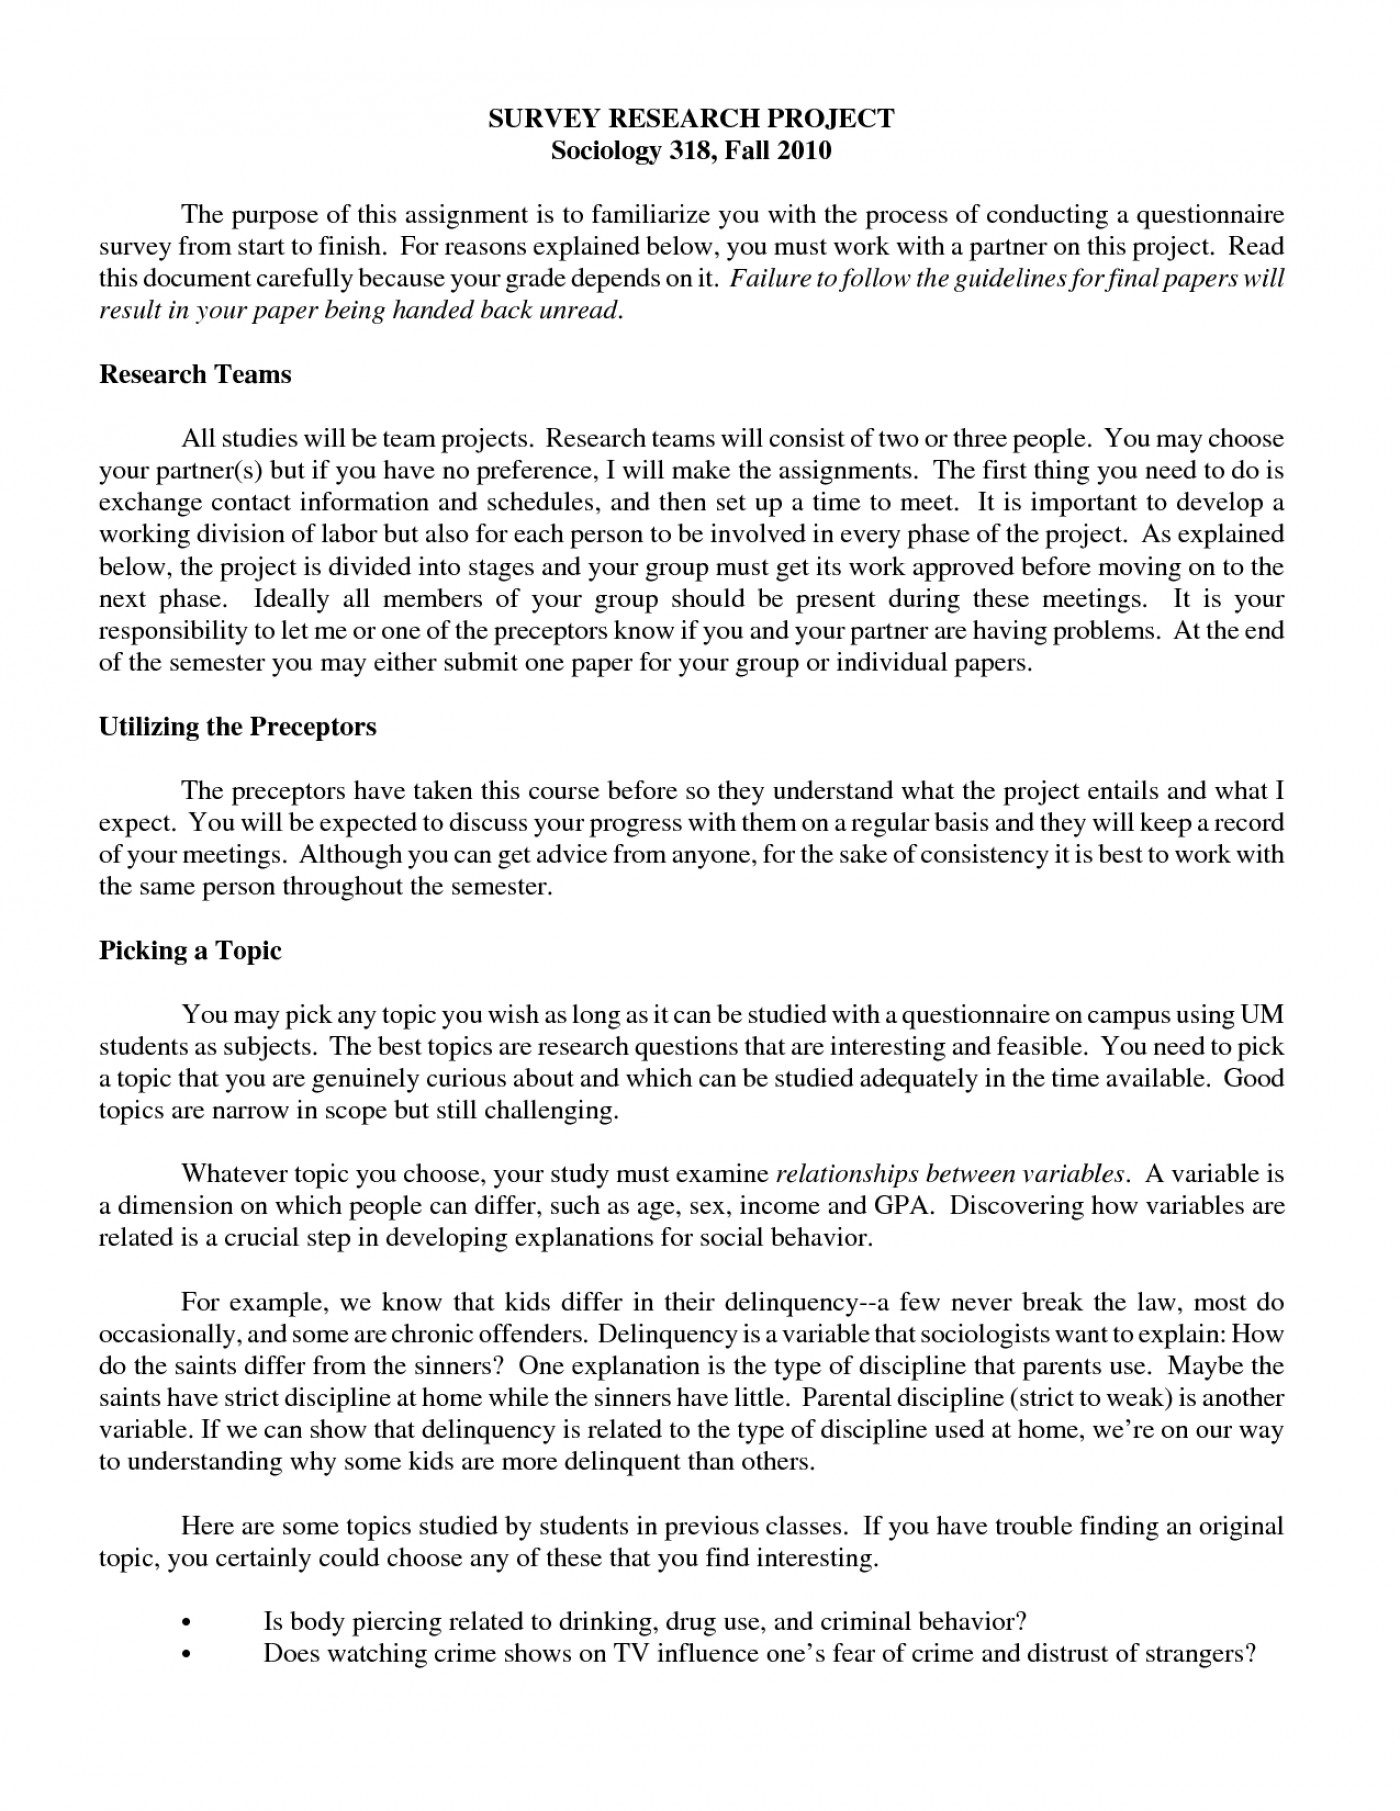 004 Persuasive Research Paper Topics About Music Remarkable Essay Topic Sentence Examples Template Bcl12q38gt Hook For An How To Awful Writing 1400